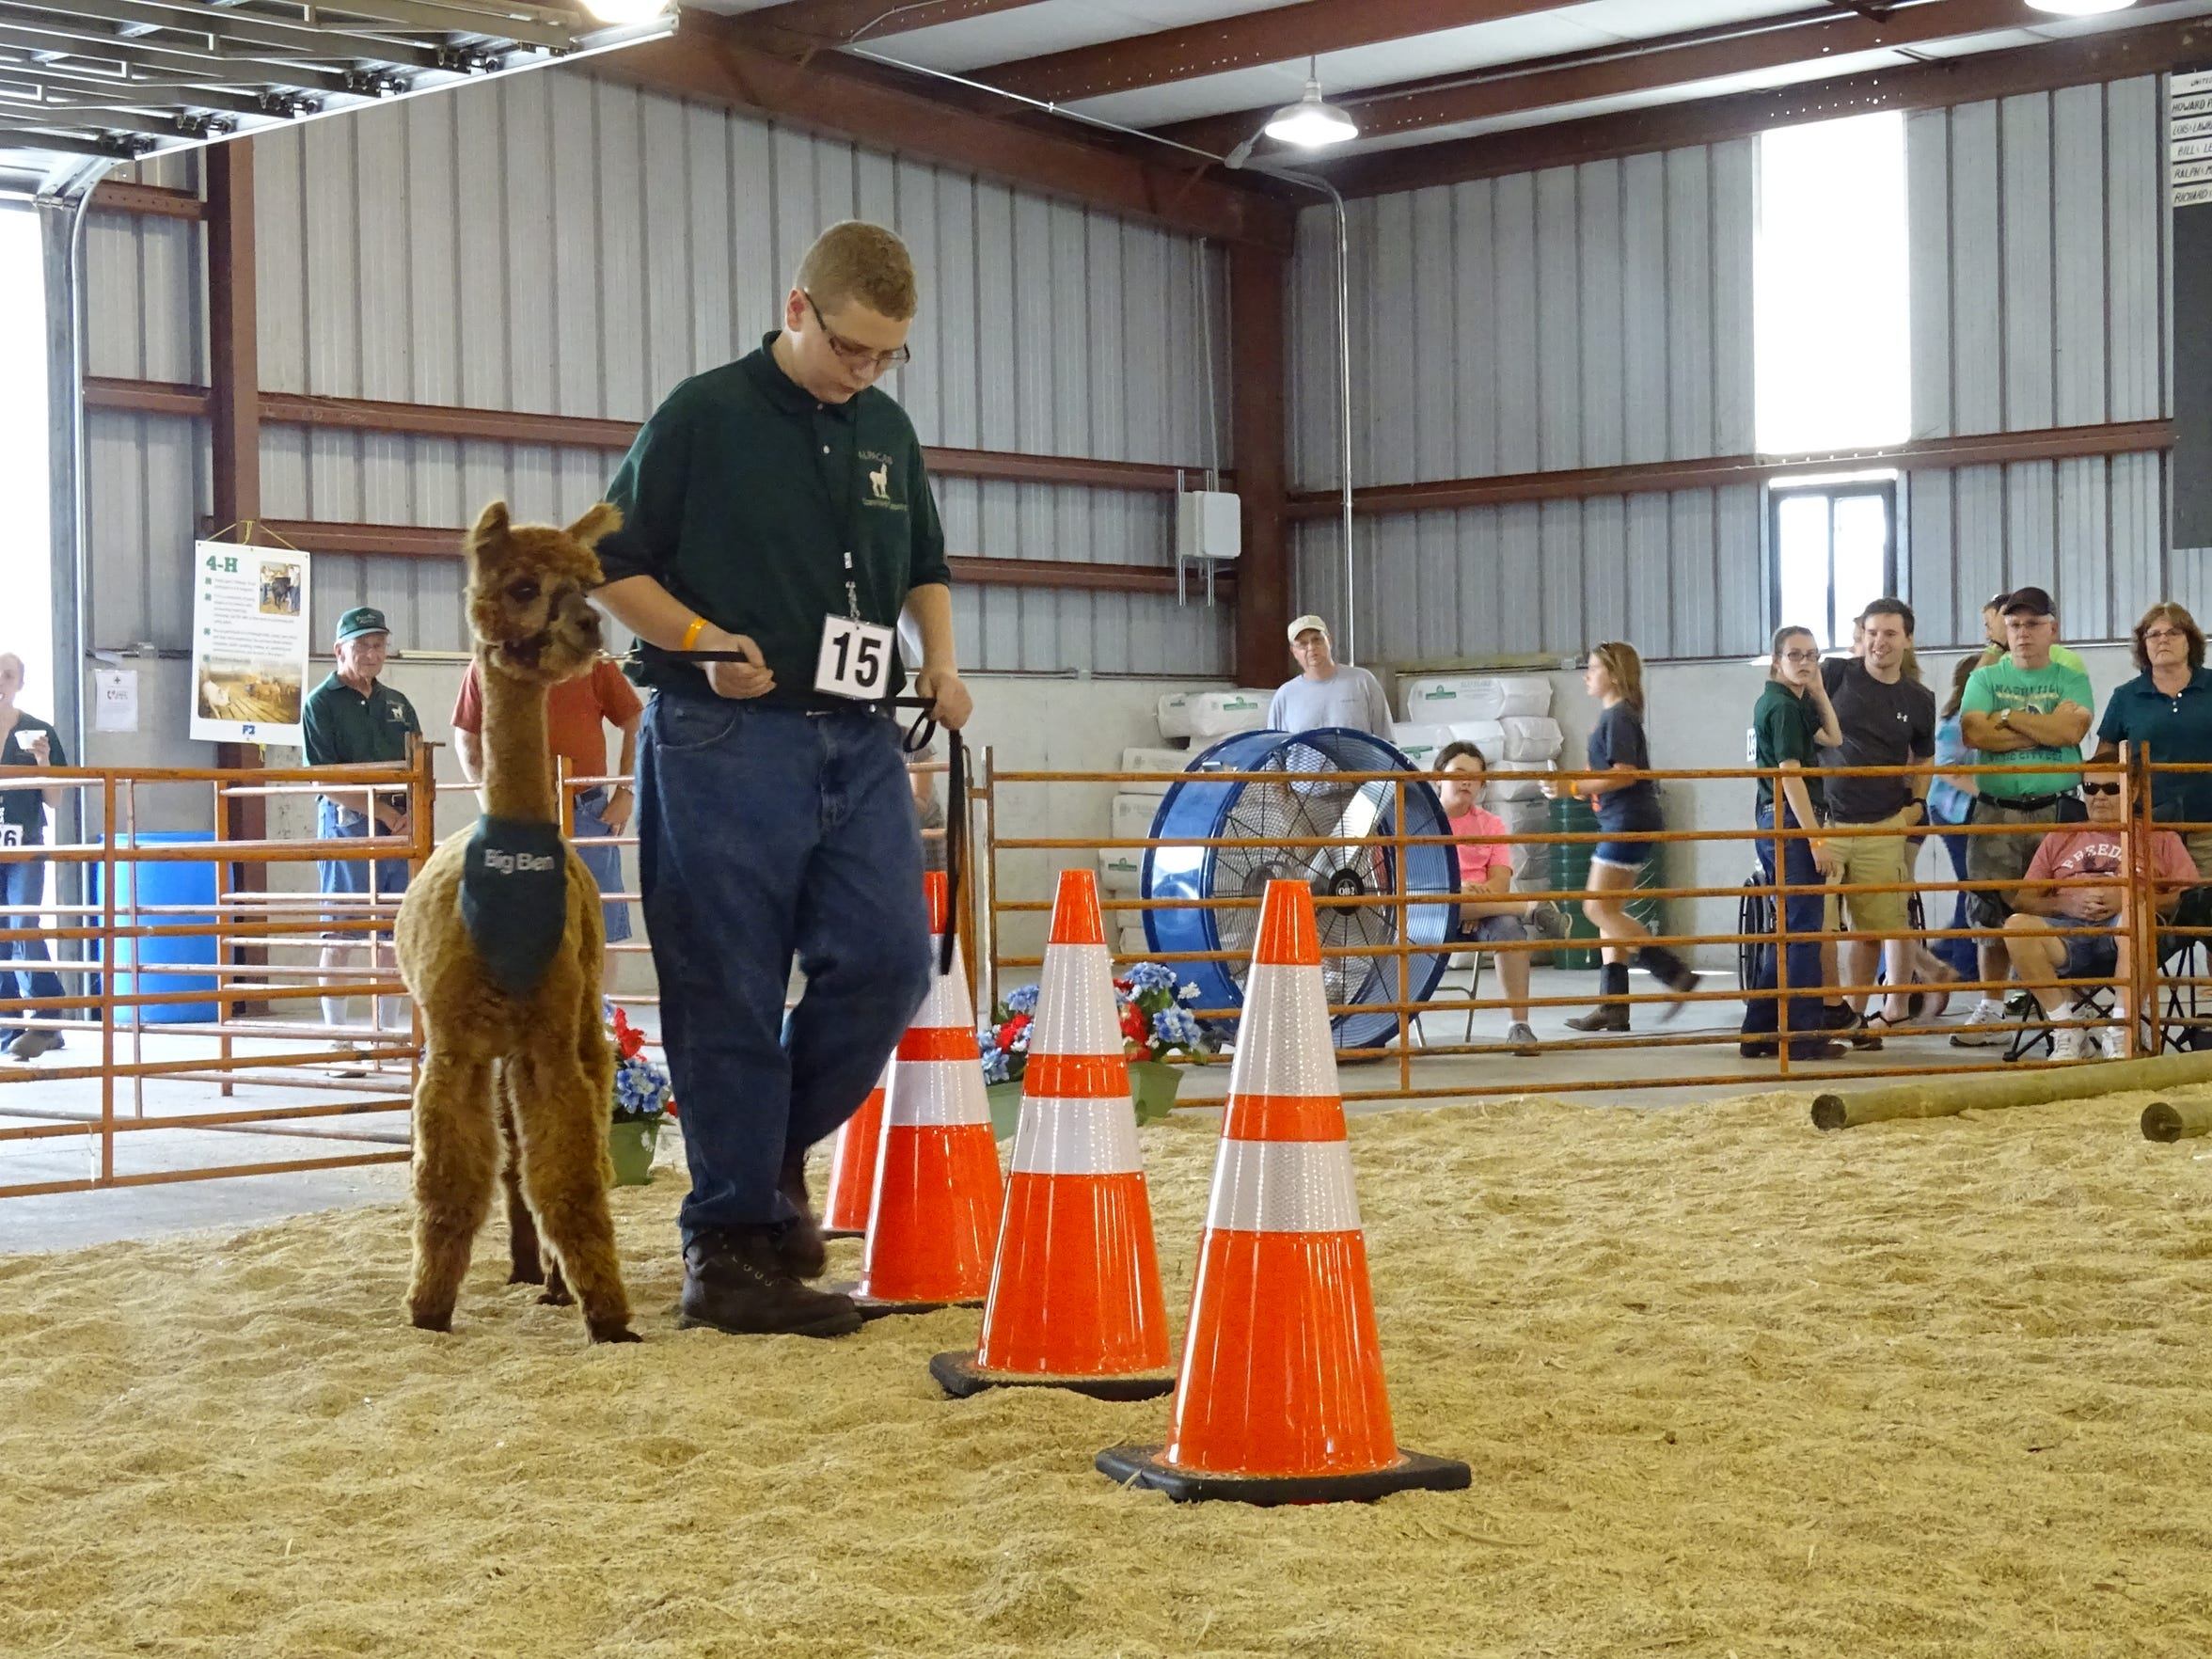 Tyler Phelps, 15, leads his alpaca around a few traffic cones Sunday during the obstacle course portion of the show.